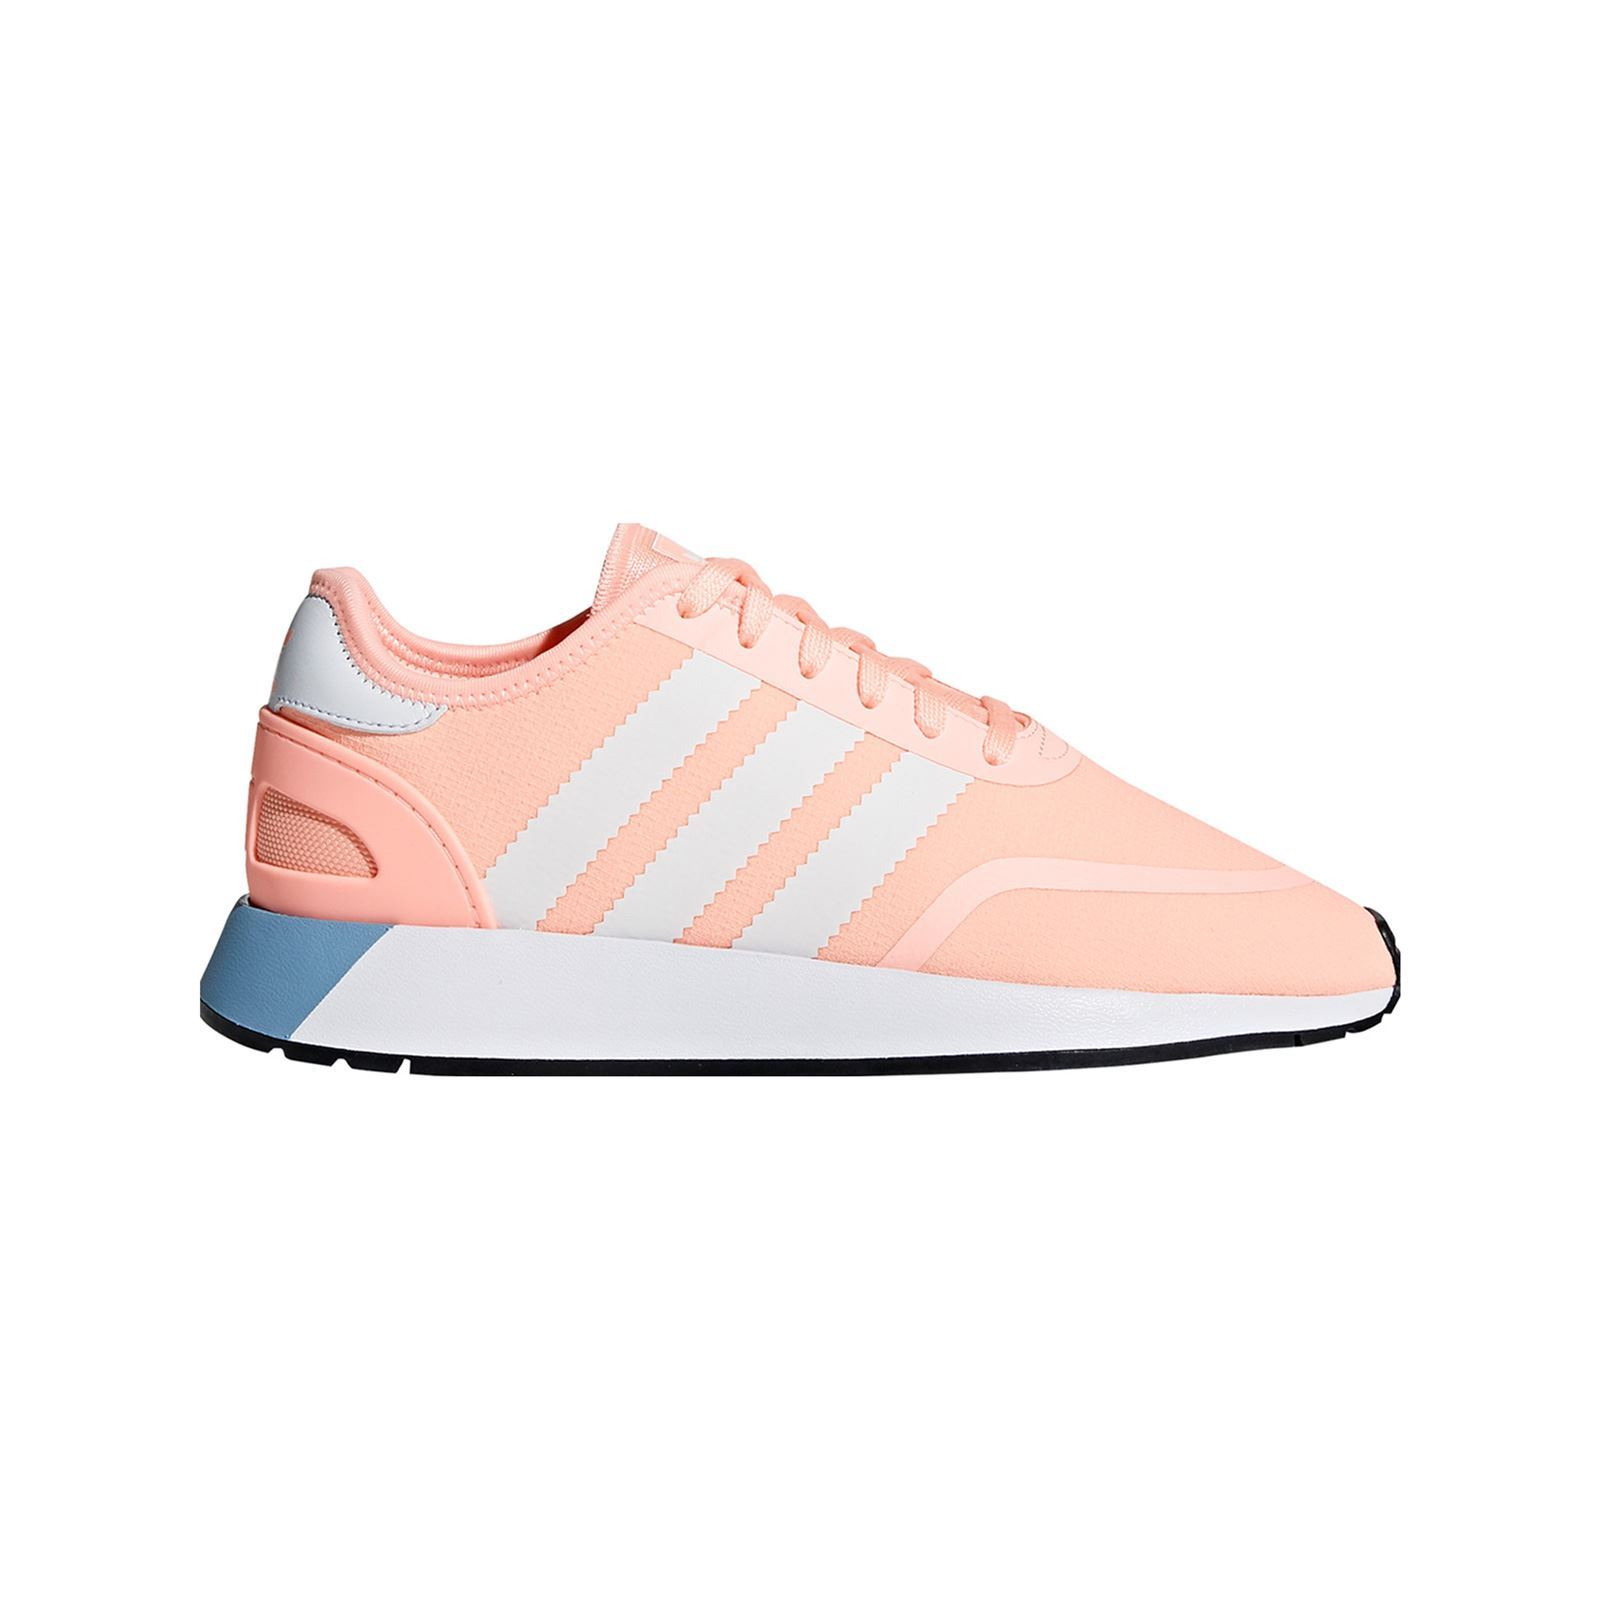 7d6802c86796 adidas Originals N-5923 W - Baskets basses - saumon | BrandAlley